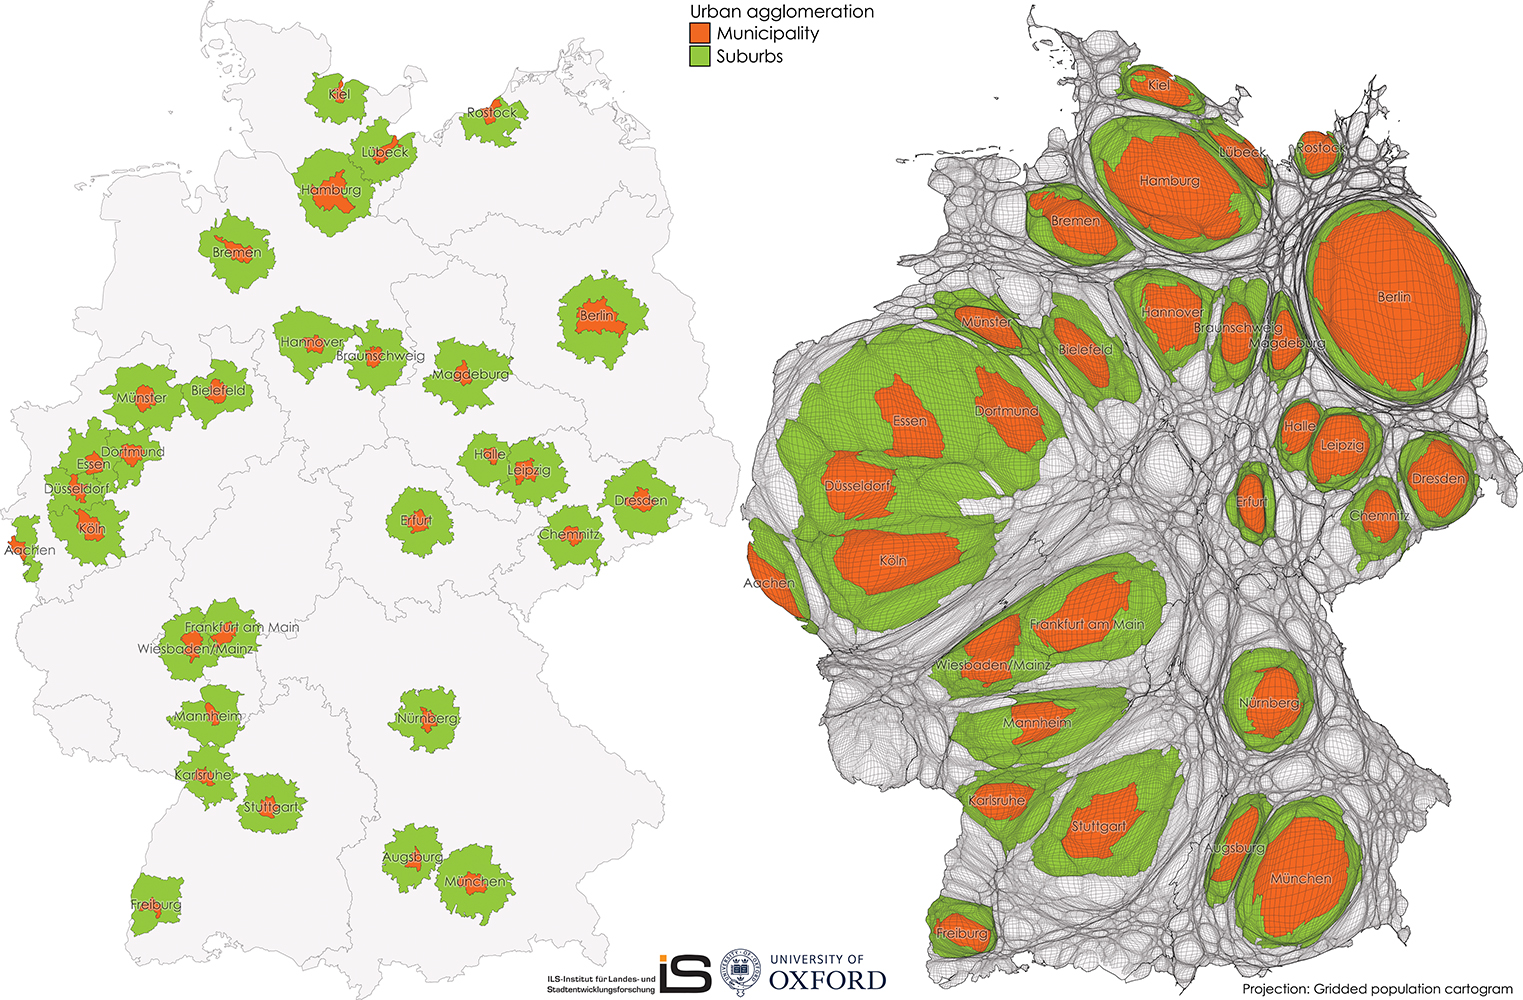 Map and gridded population cartogram of Urban Agglomerations in Germany